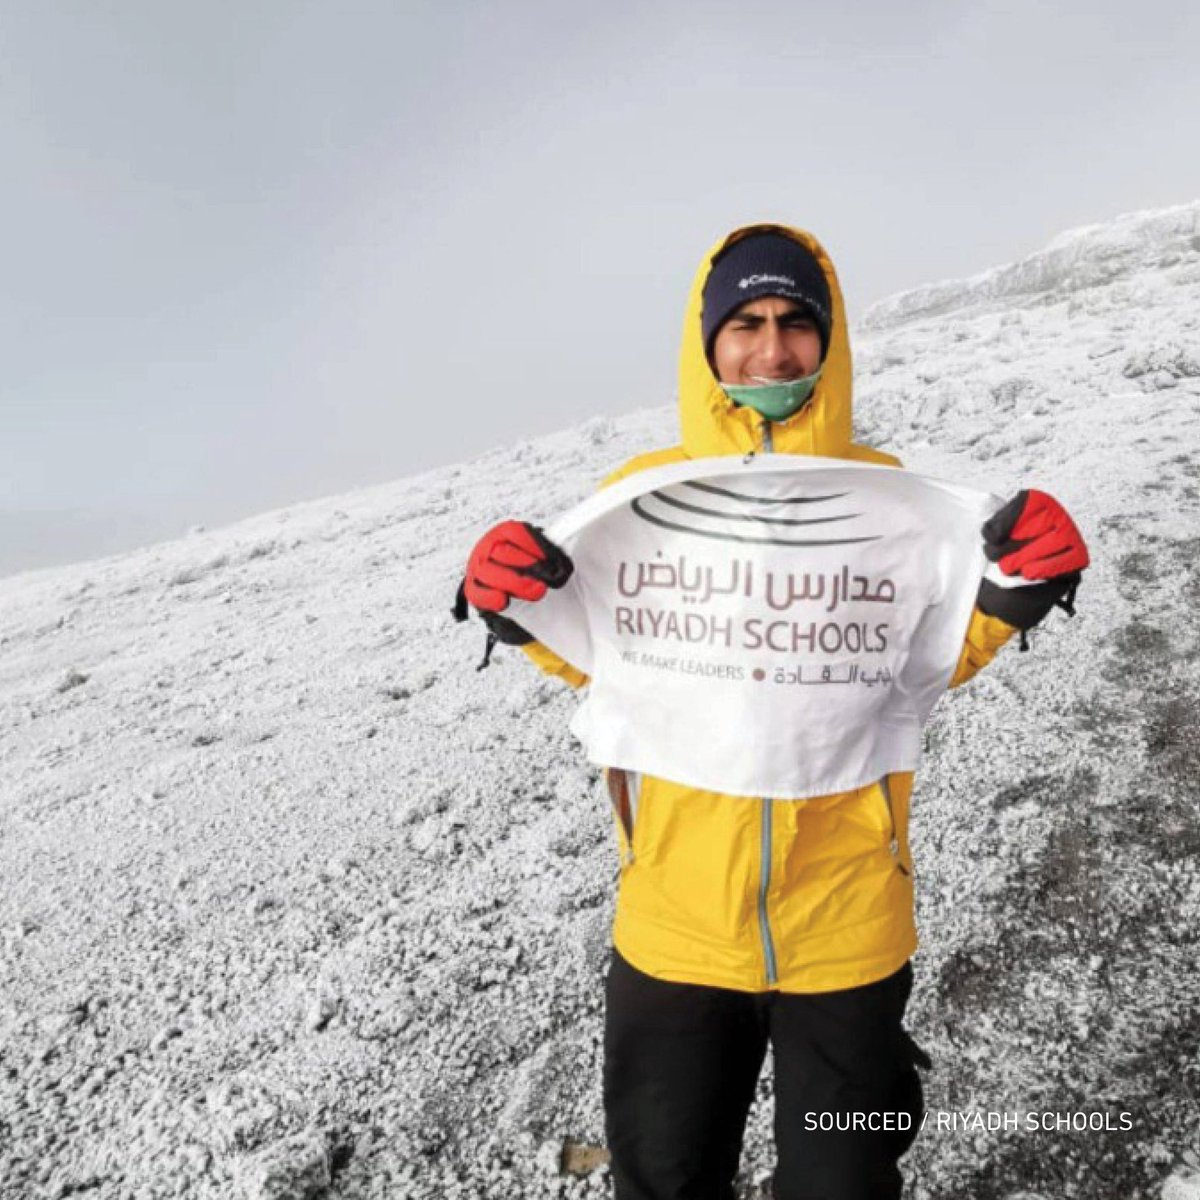 In an unbelievable accomplishment, 14 year old Abullah Altoaimi became the youngest #Saudi to scale Mount Kilimanjaro. Taking over a week to complete, Abdullah's achievement is an absolutely incredible success!  #SaudiArabia<br>http://pic.twitter.com/ojmncwtyKz